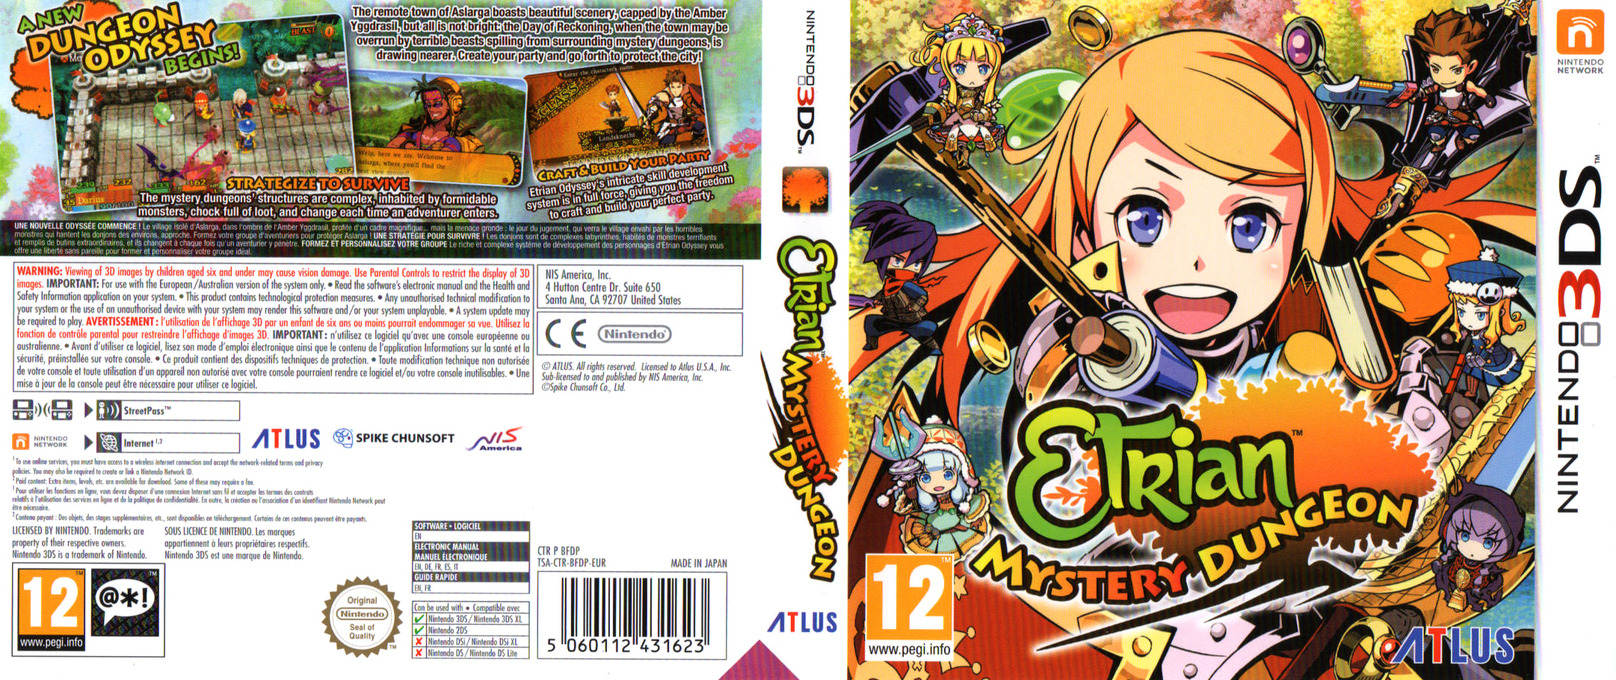 Etrian Mystery Dungeon 3DS coverfullHQ (BFDP)